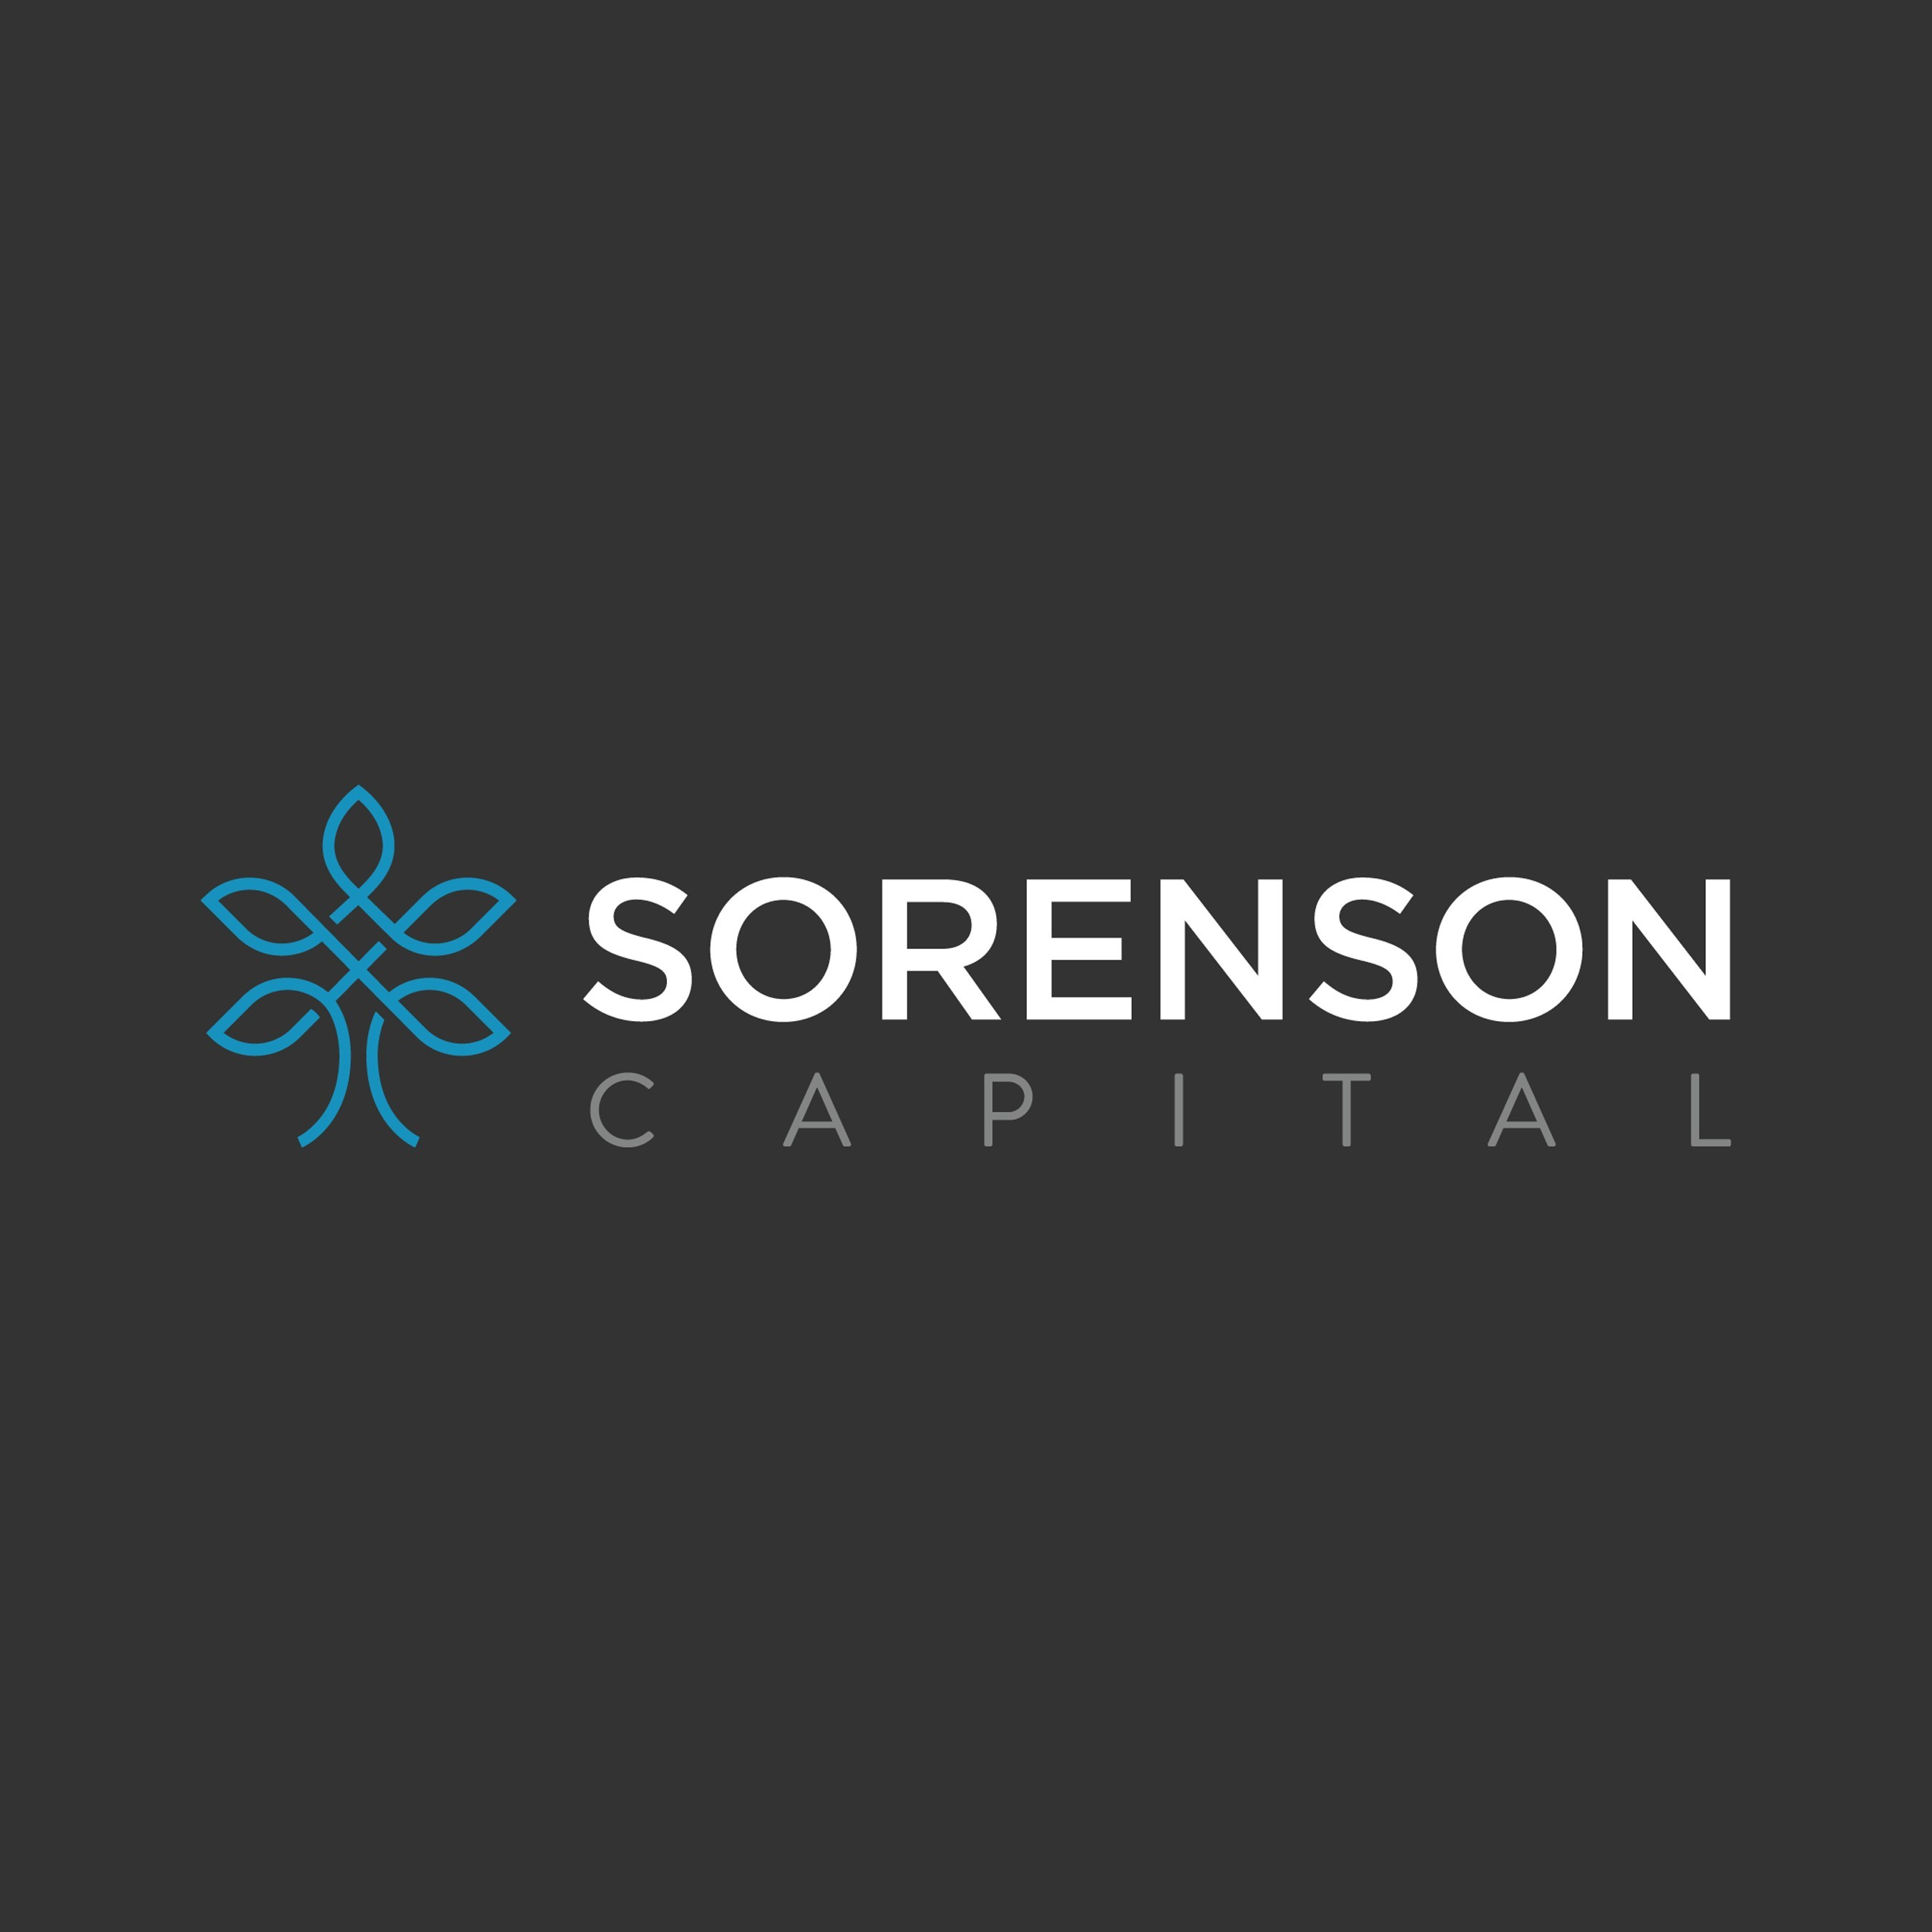 Sorenson Capital Forms Sorenson Ventures to Invest in Enterprise